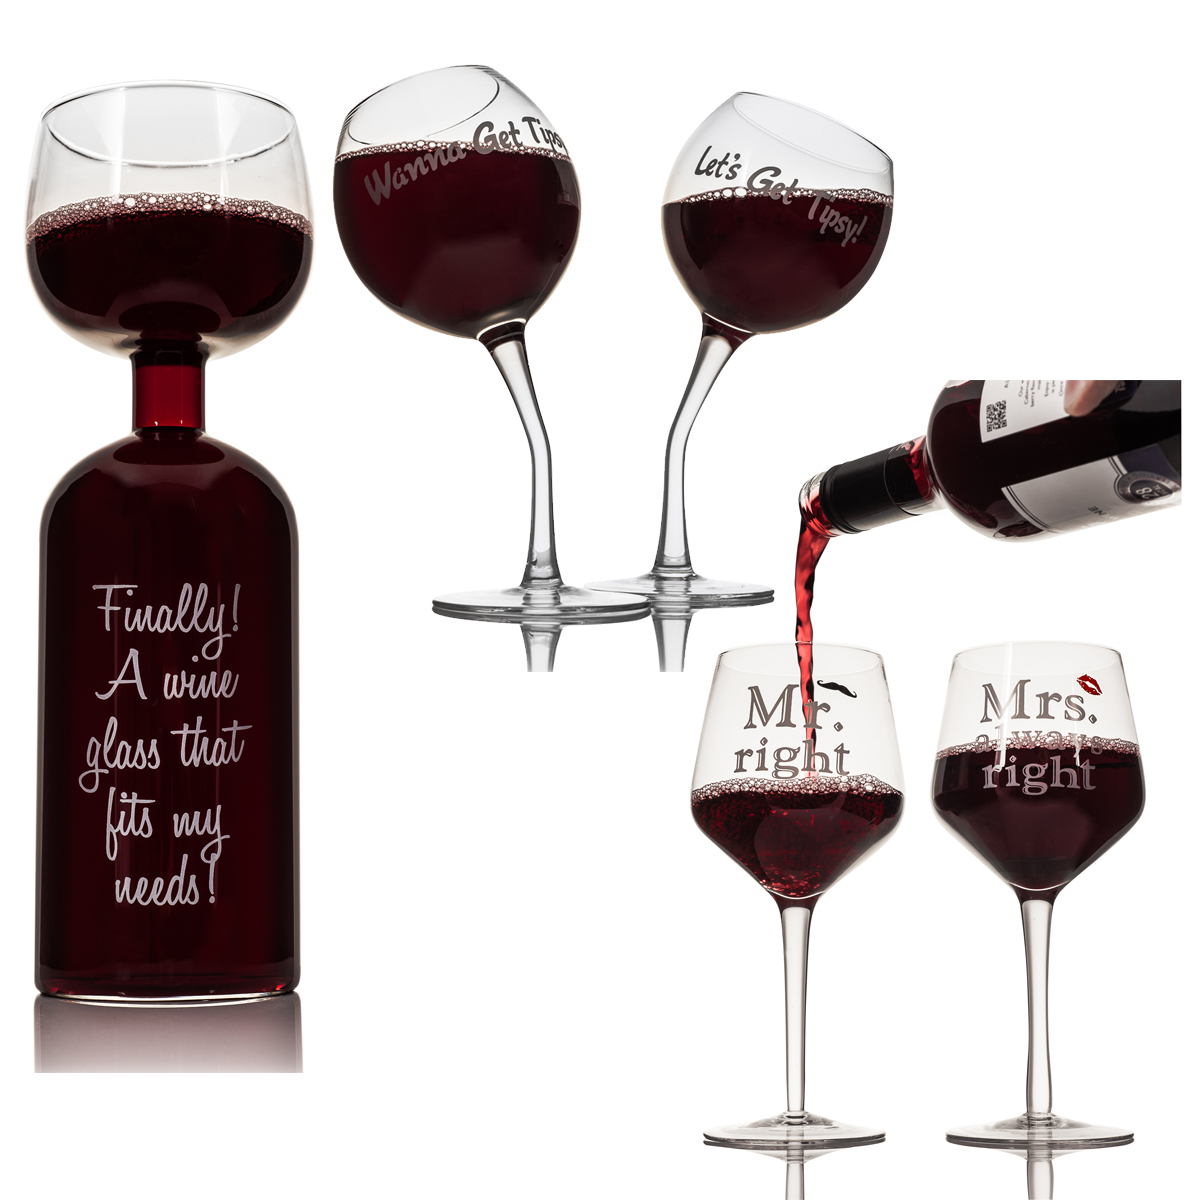 d15637cba0 Details about MR   MRS ALWAYS RIGHT   TIPSY   WINE BOTTLE GLASS DRINKING  GLASSES XMAS GIFT